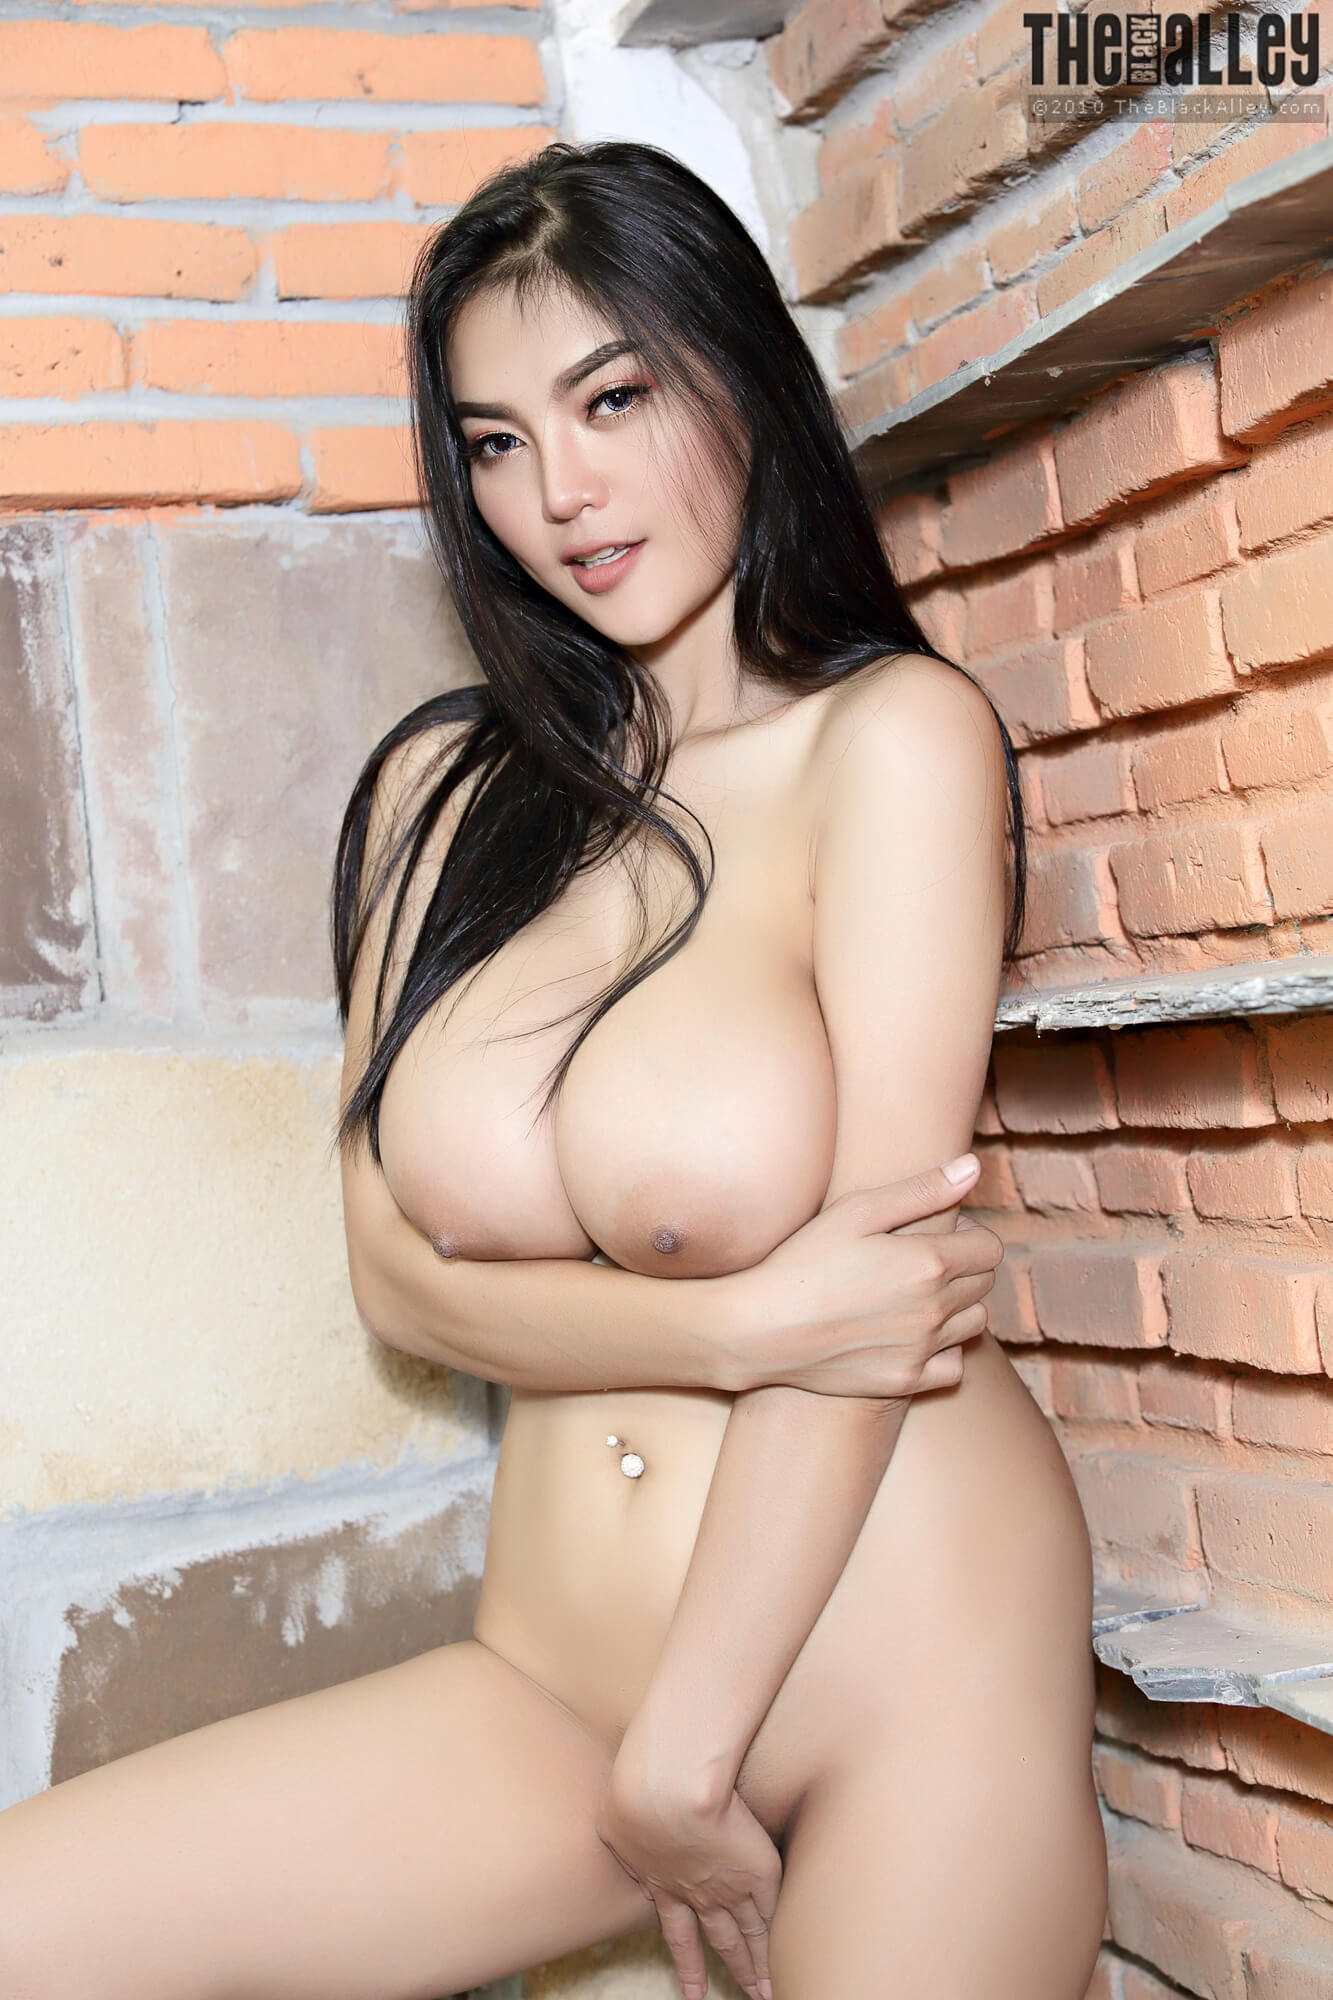 Nude 12 Pictures Pitta Busty Asian The Black Alley -9674